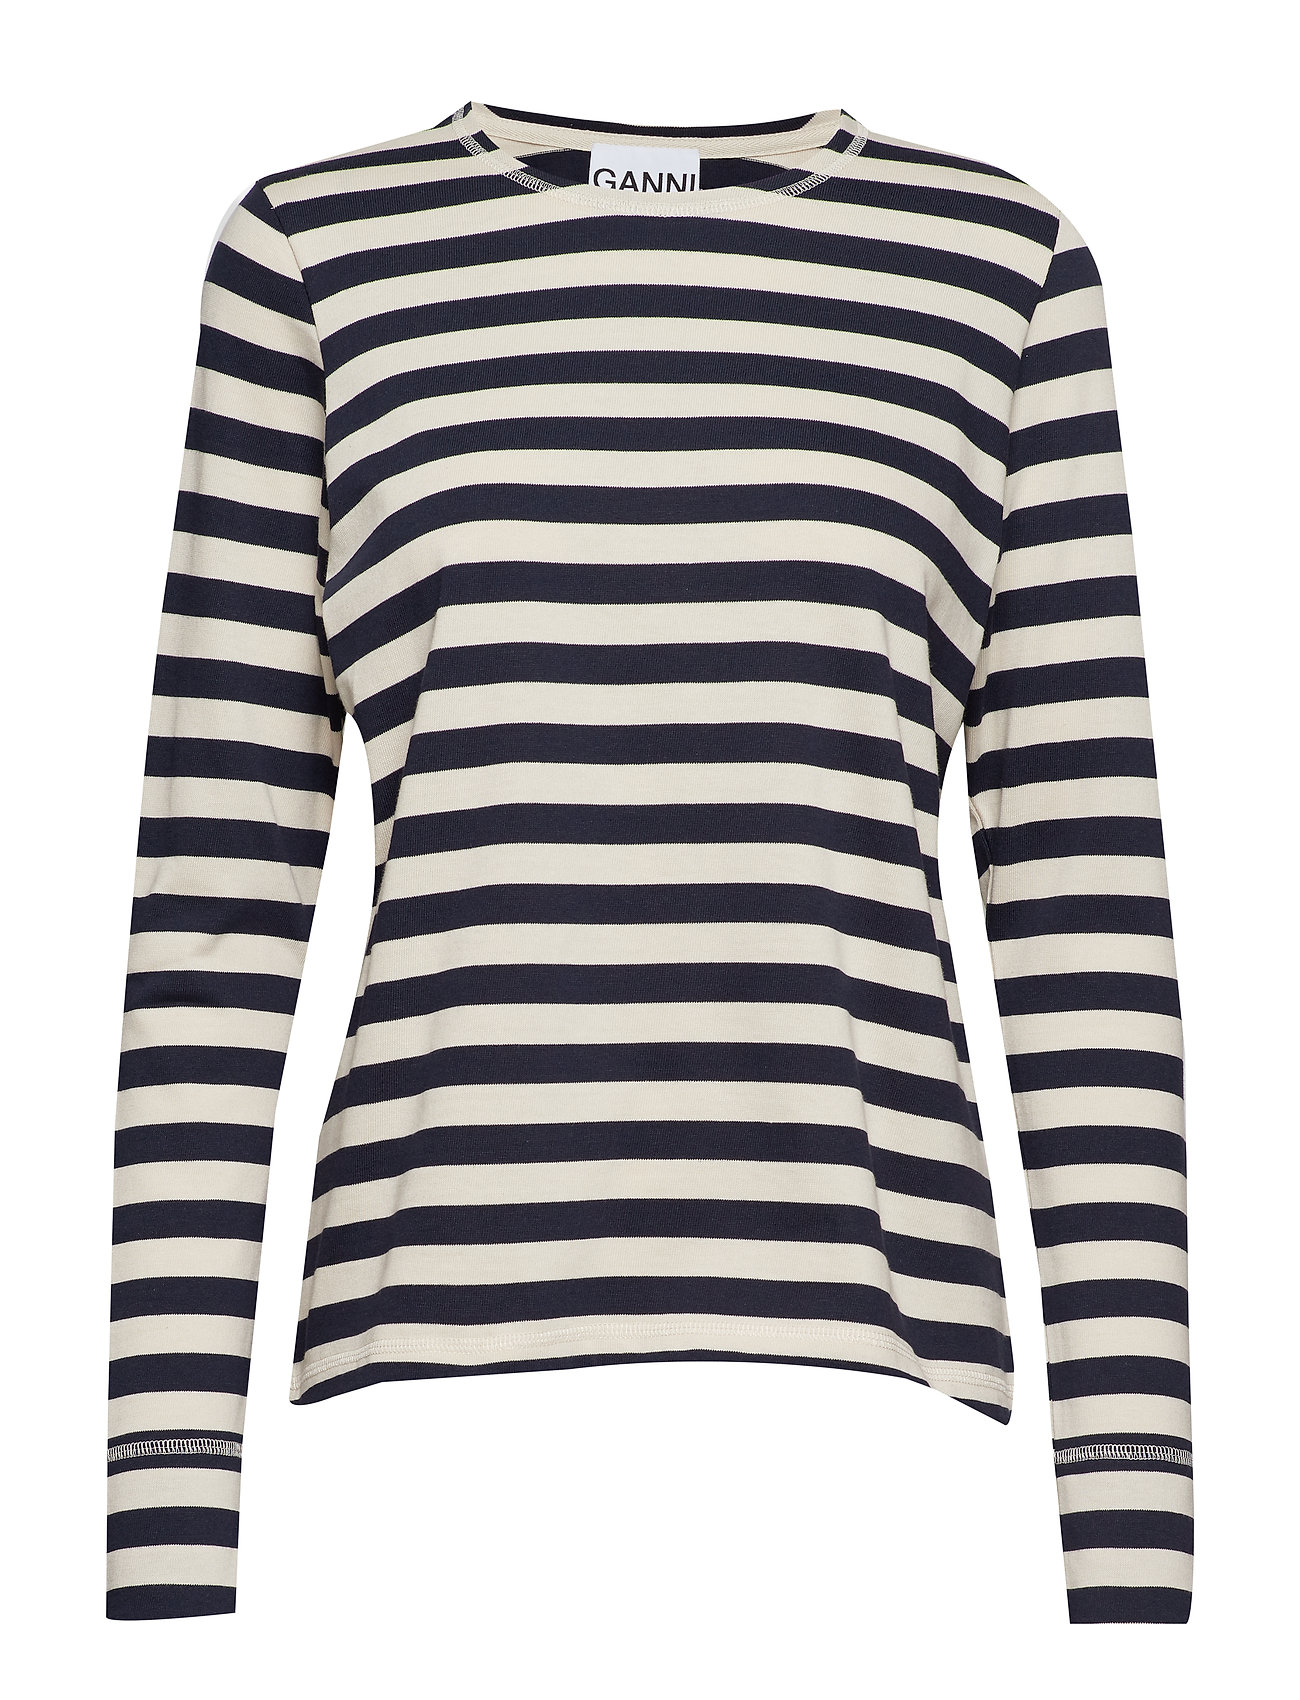 Ganni Striped Cotton Jersey - NATURE/DRESS BLUES